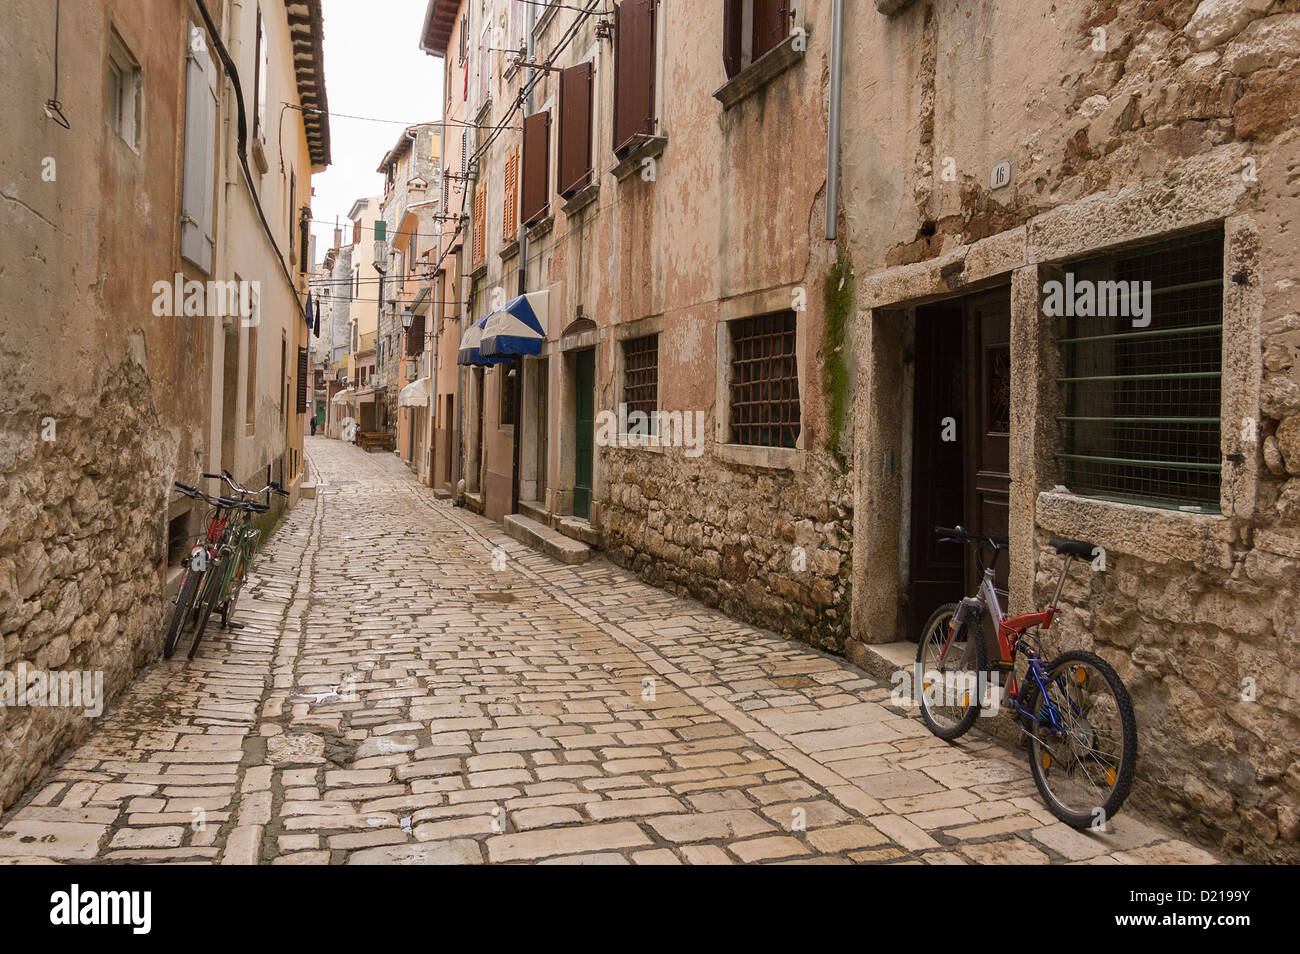 Elk192-1612 Croatia, Rovinj, pedestrian street with bicycles - Stock Image